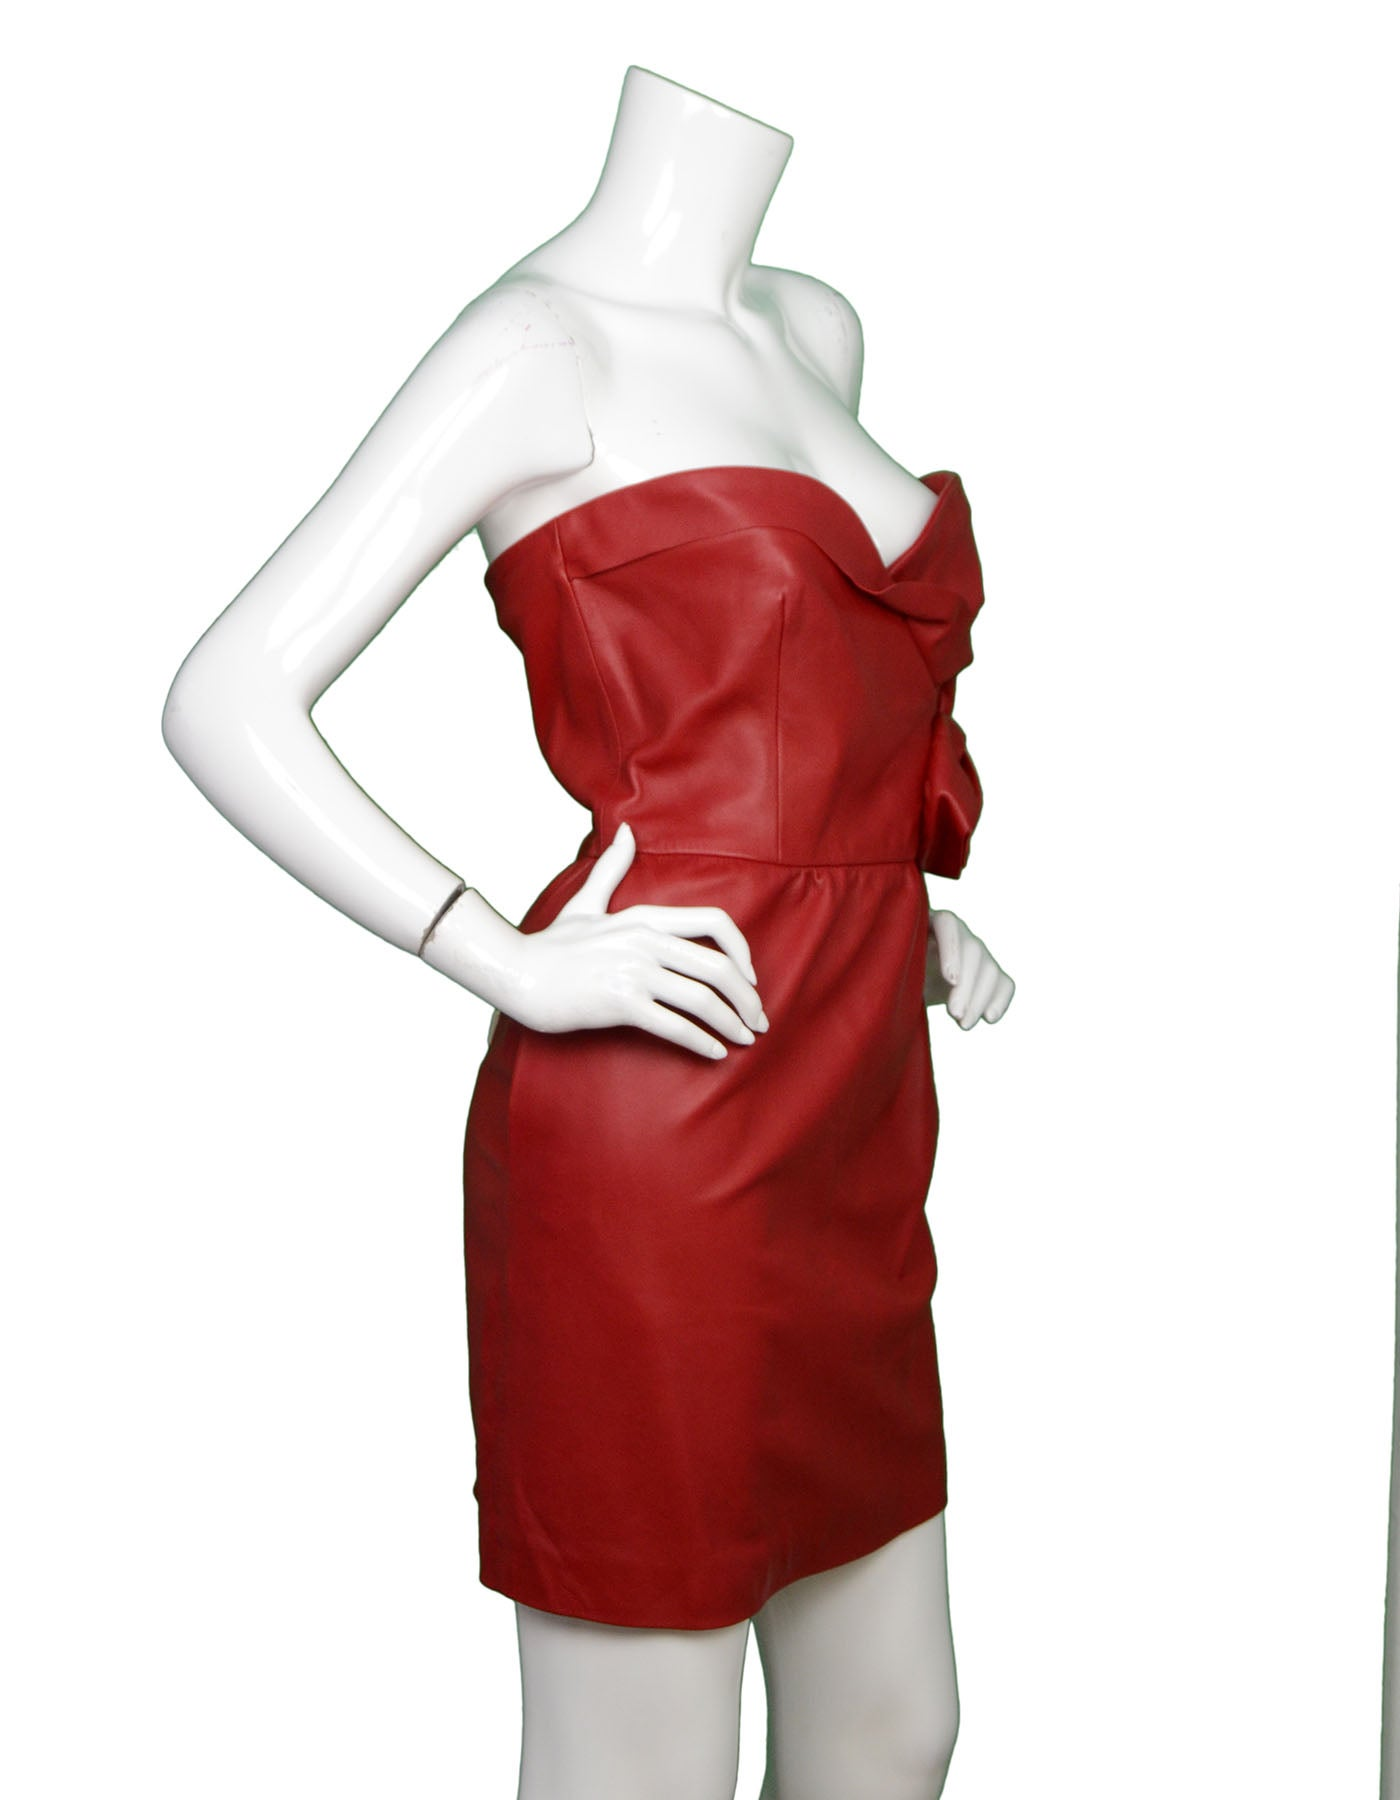 727d4d04d76f Valentino NWT Red Leather Strapless Dress w/ Rose rt. $4,200 For Sale at  1stdibs